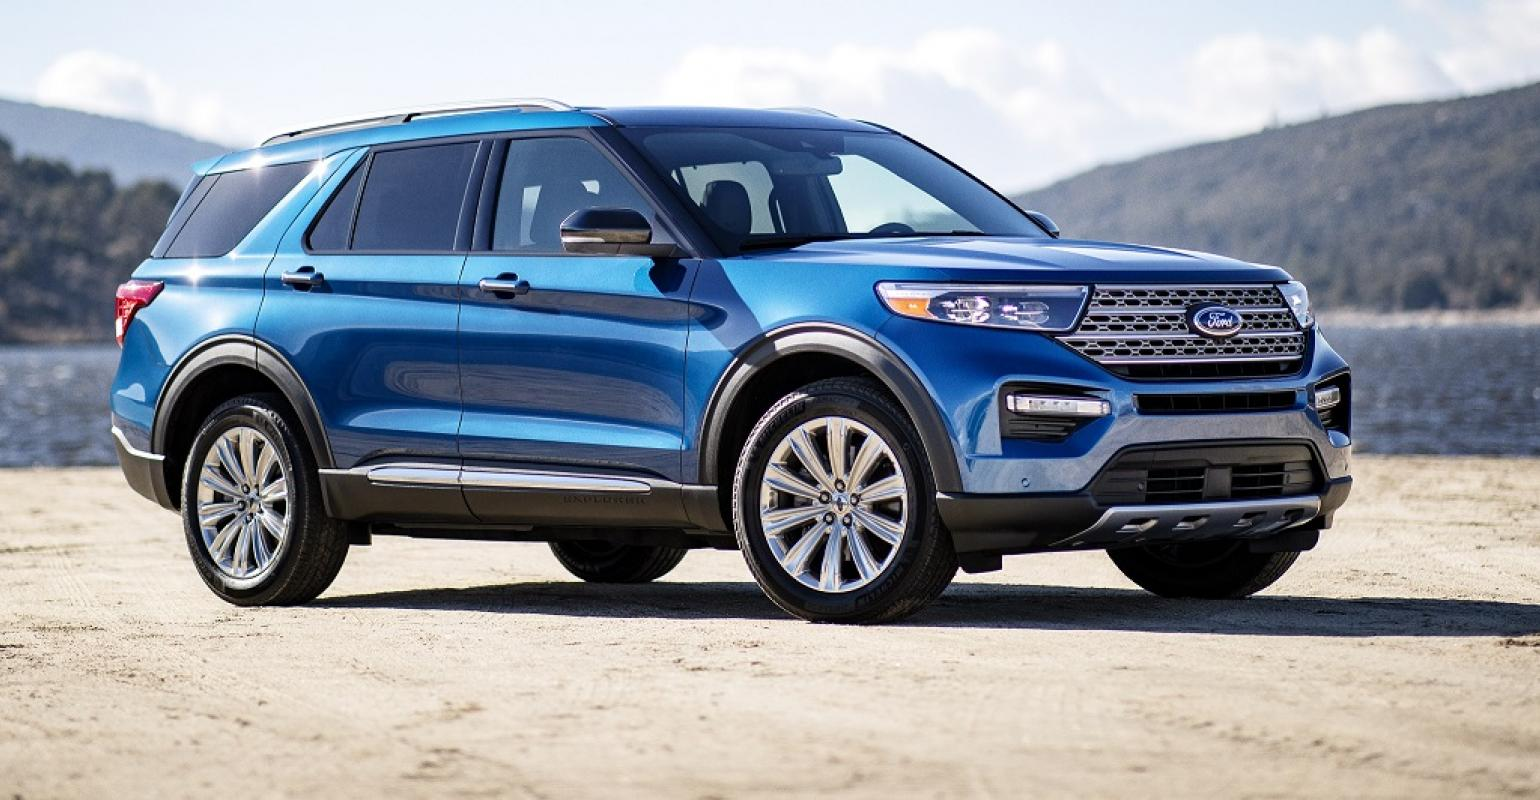 2020 Ford Expedition Diesel, Hybrid, Redesign, Price >> 2020 Ford Expedition Diesel And Hybrid Updates Upcoming New Car